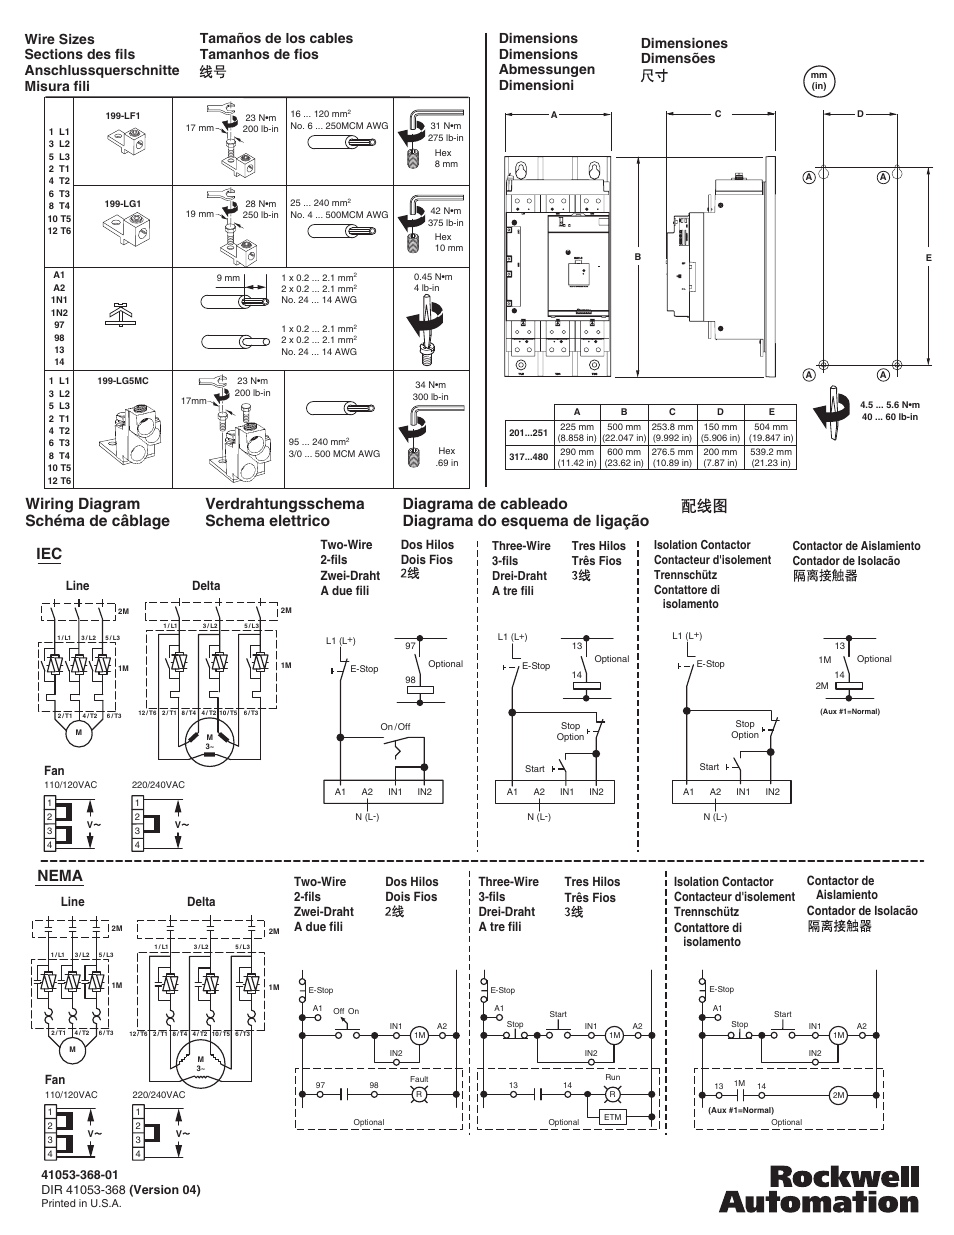 rockwell automation 150 smc 3 201a 480a soft starter 3 phase installations page4 wiring diagram sch�ma de c�blage iec, nema, verdrahtungsschema smc fan wiring diagram at alyssarenee.co